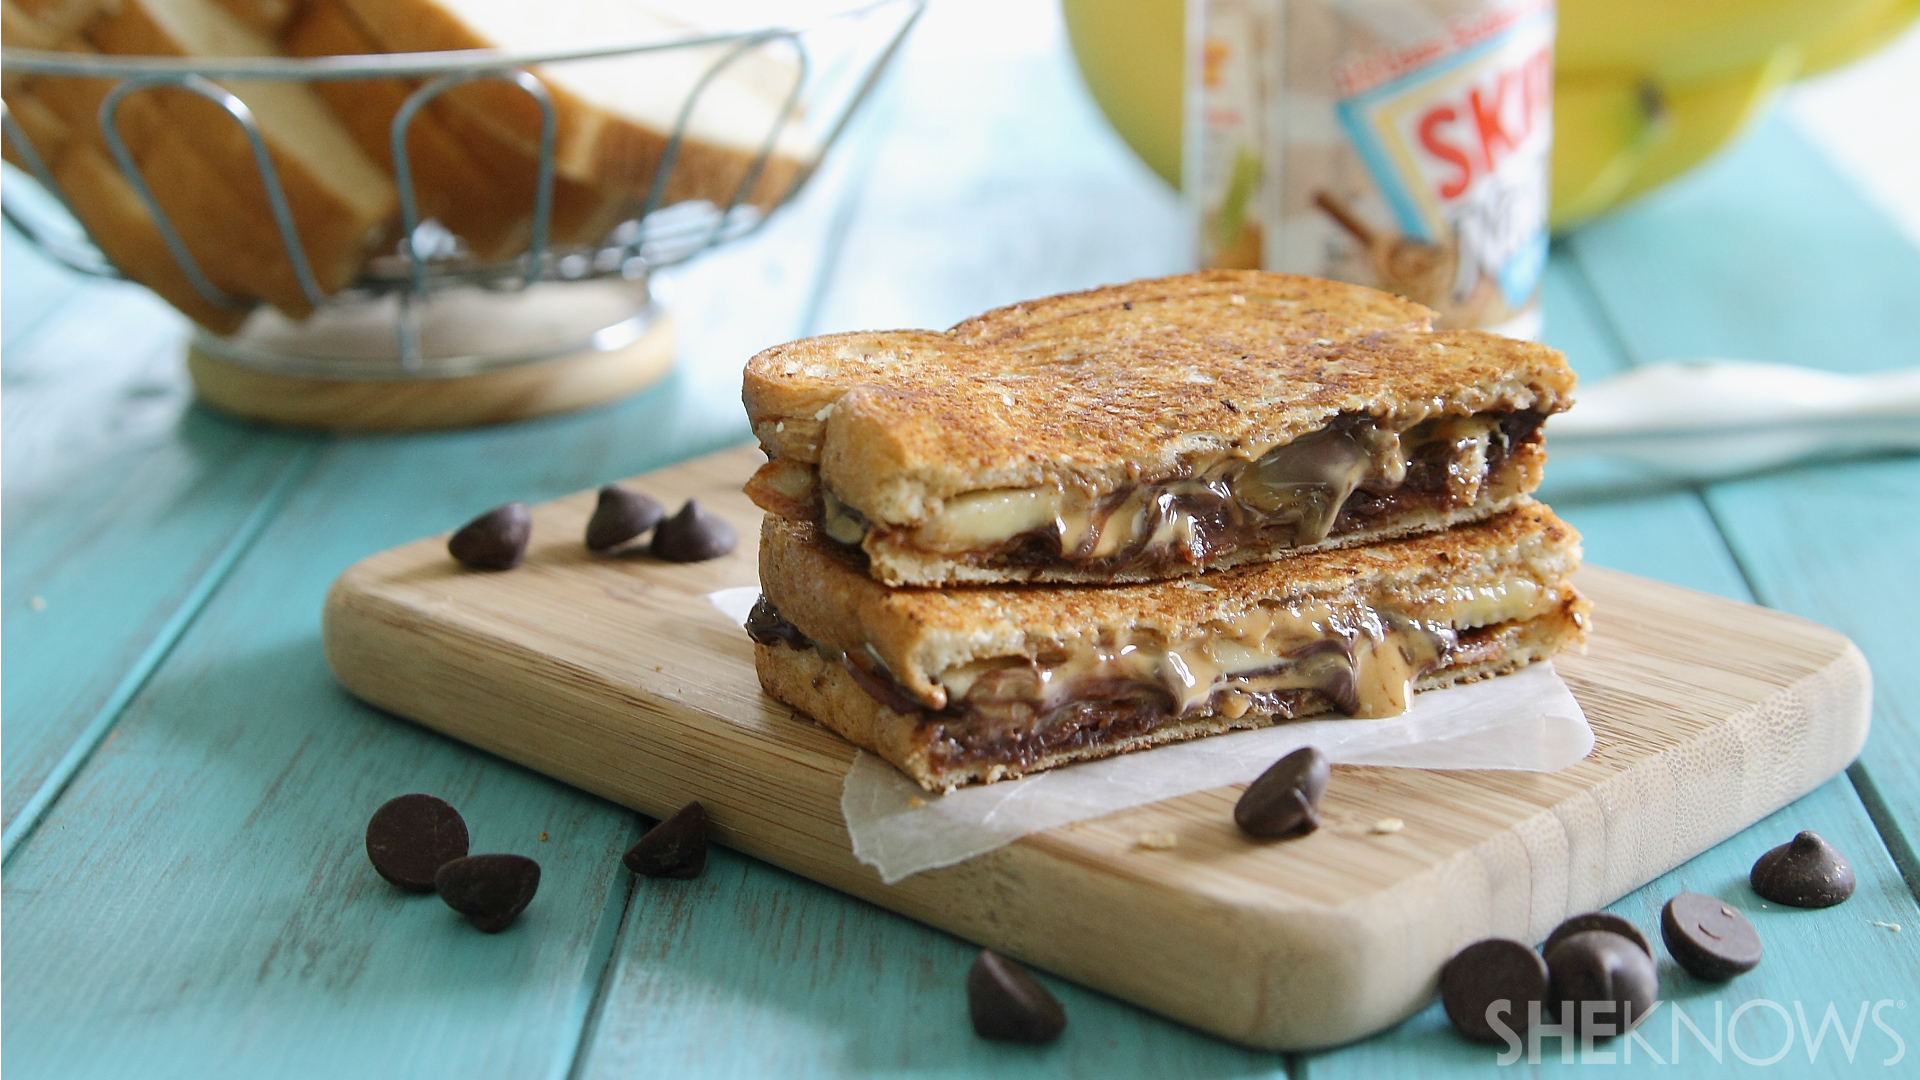 ... upped Elvis with this over-the-top peanut butter and banana sandwich